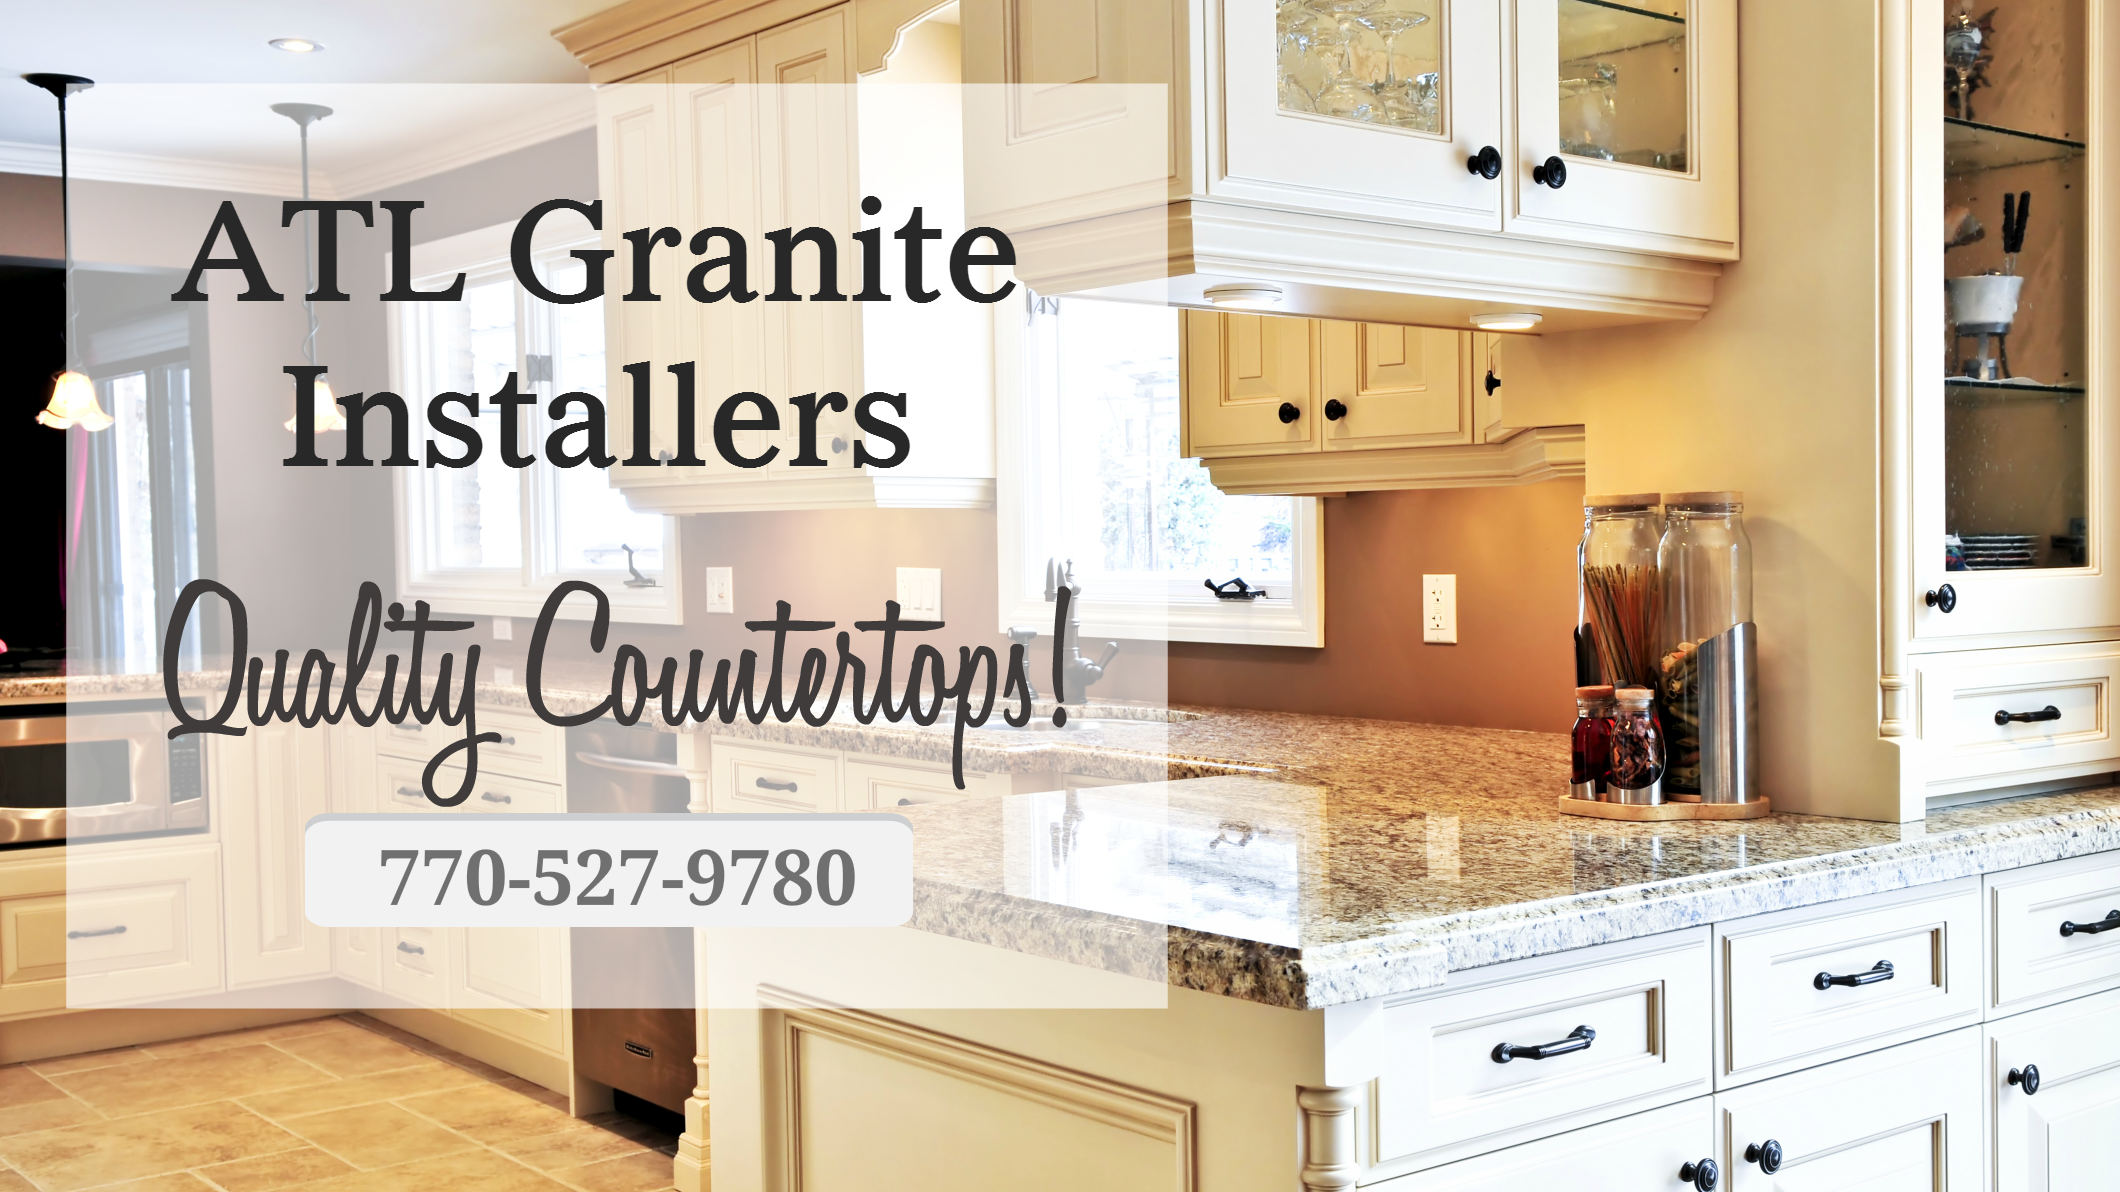 granite-countertops-woodstock-2017-atlanta-best-countertops-atl-granite